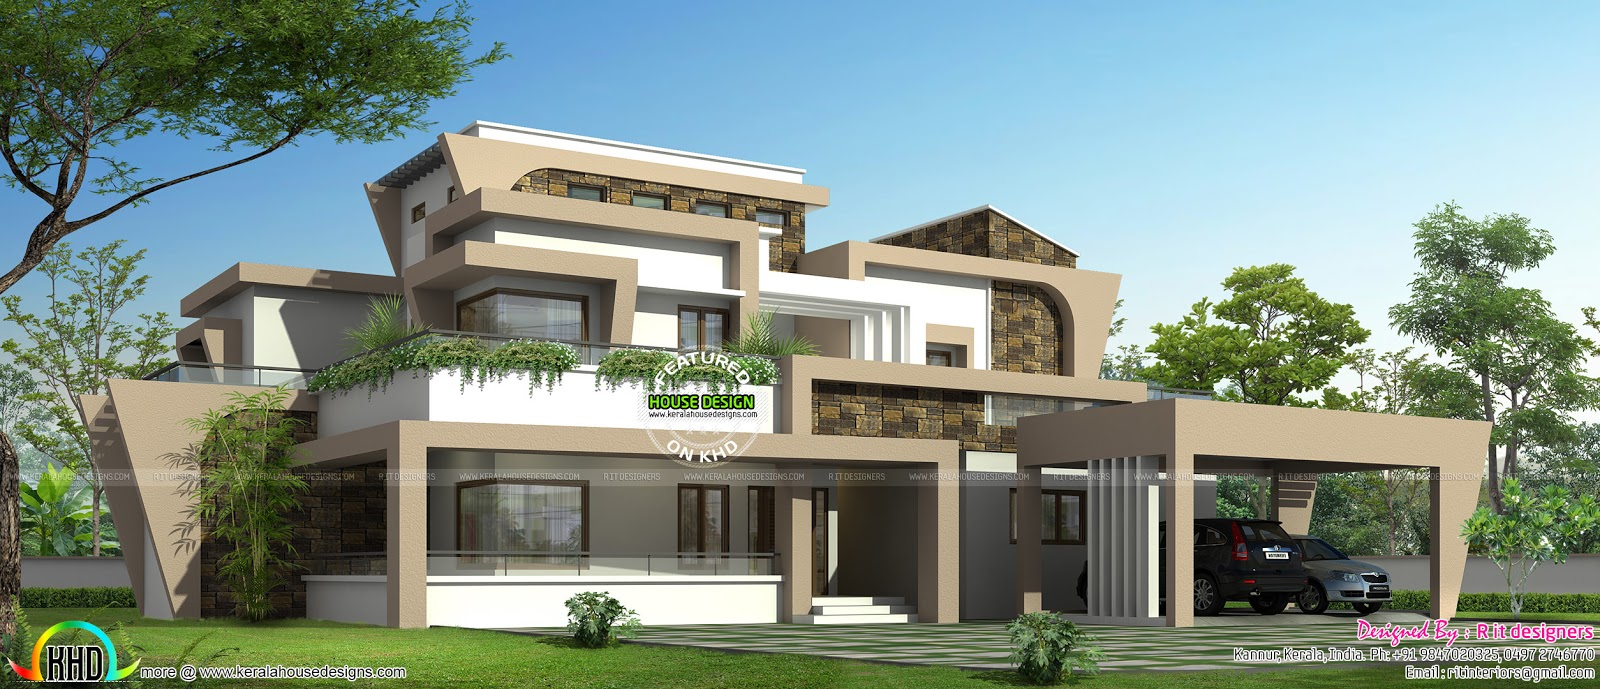 Unique modern home design in kerala kerala home design for Unique modern house designs